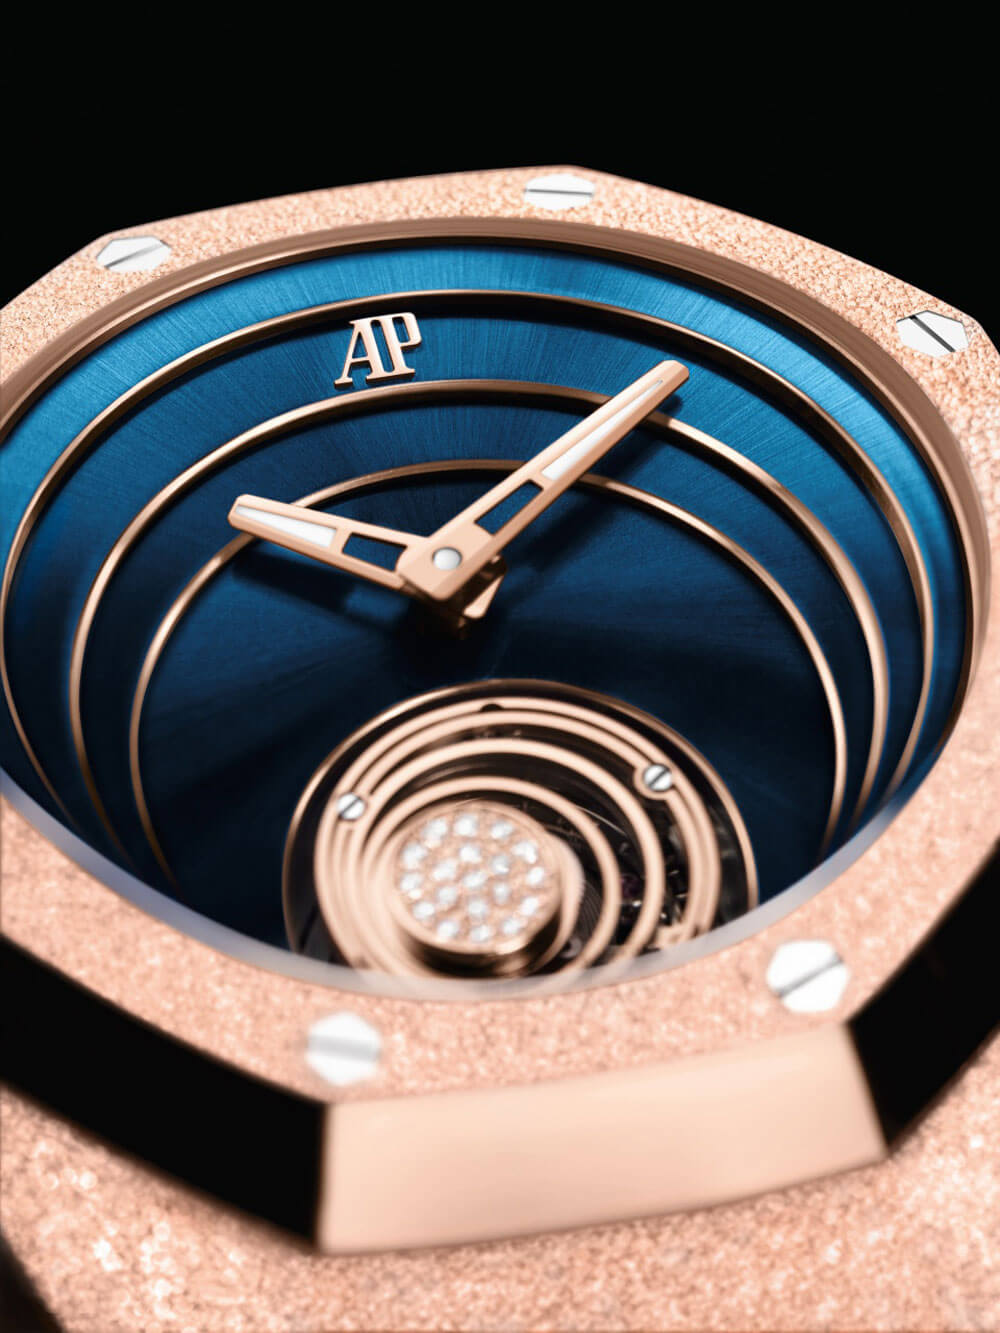 Audemars Piguet Royal Oak Concept Frosted Rose Gold Flying Tourbillon Watch Dial